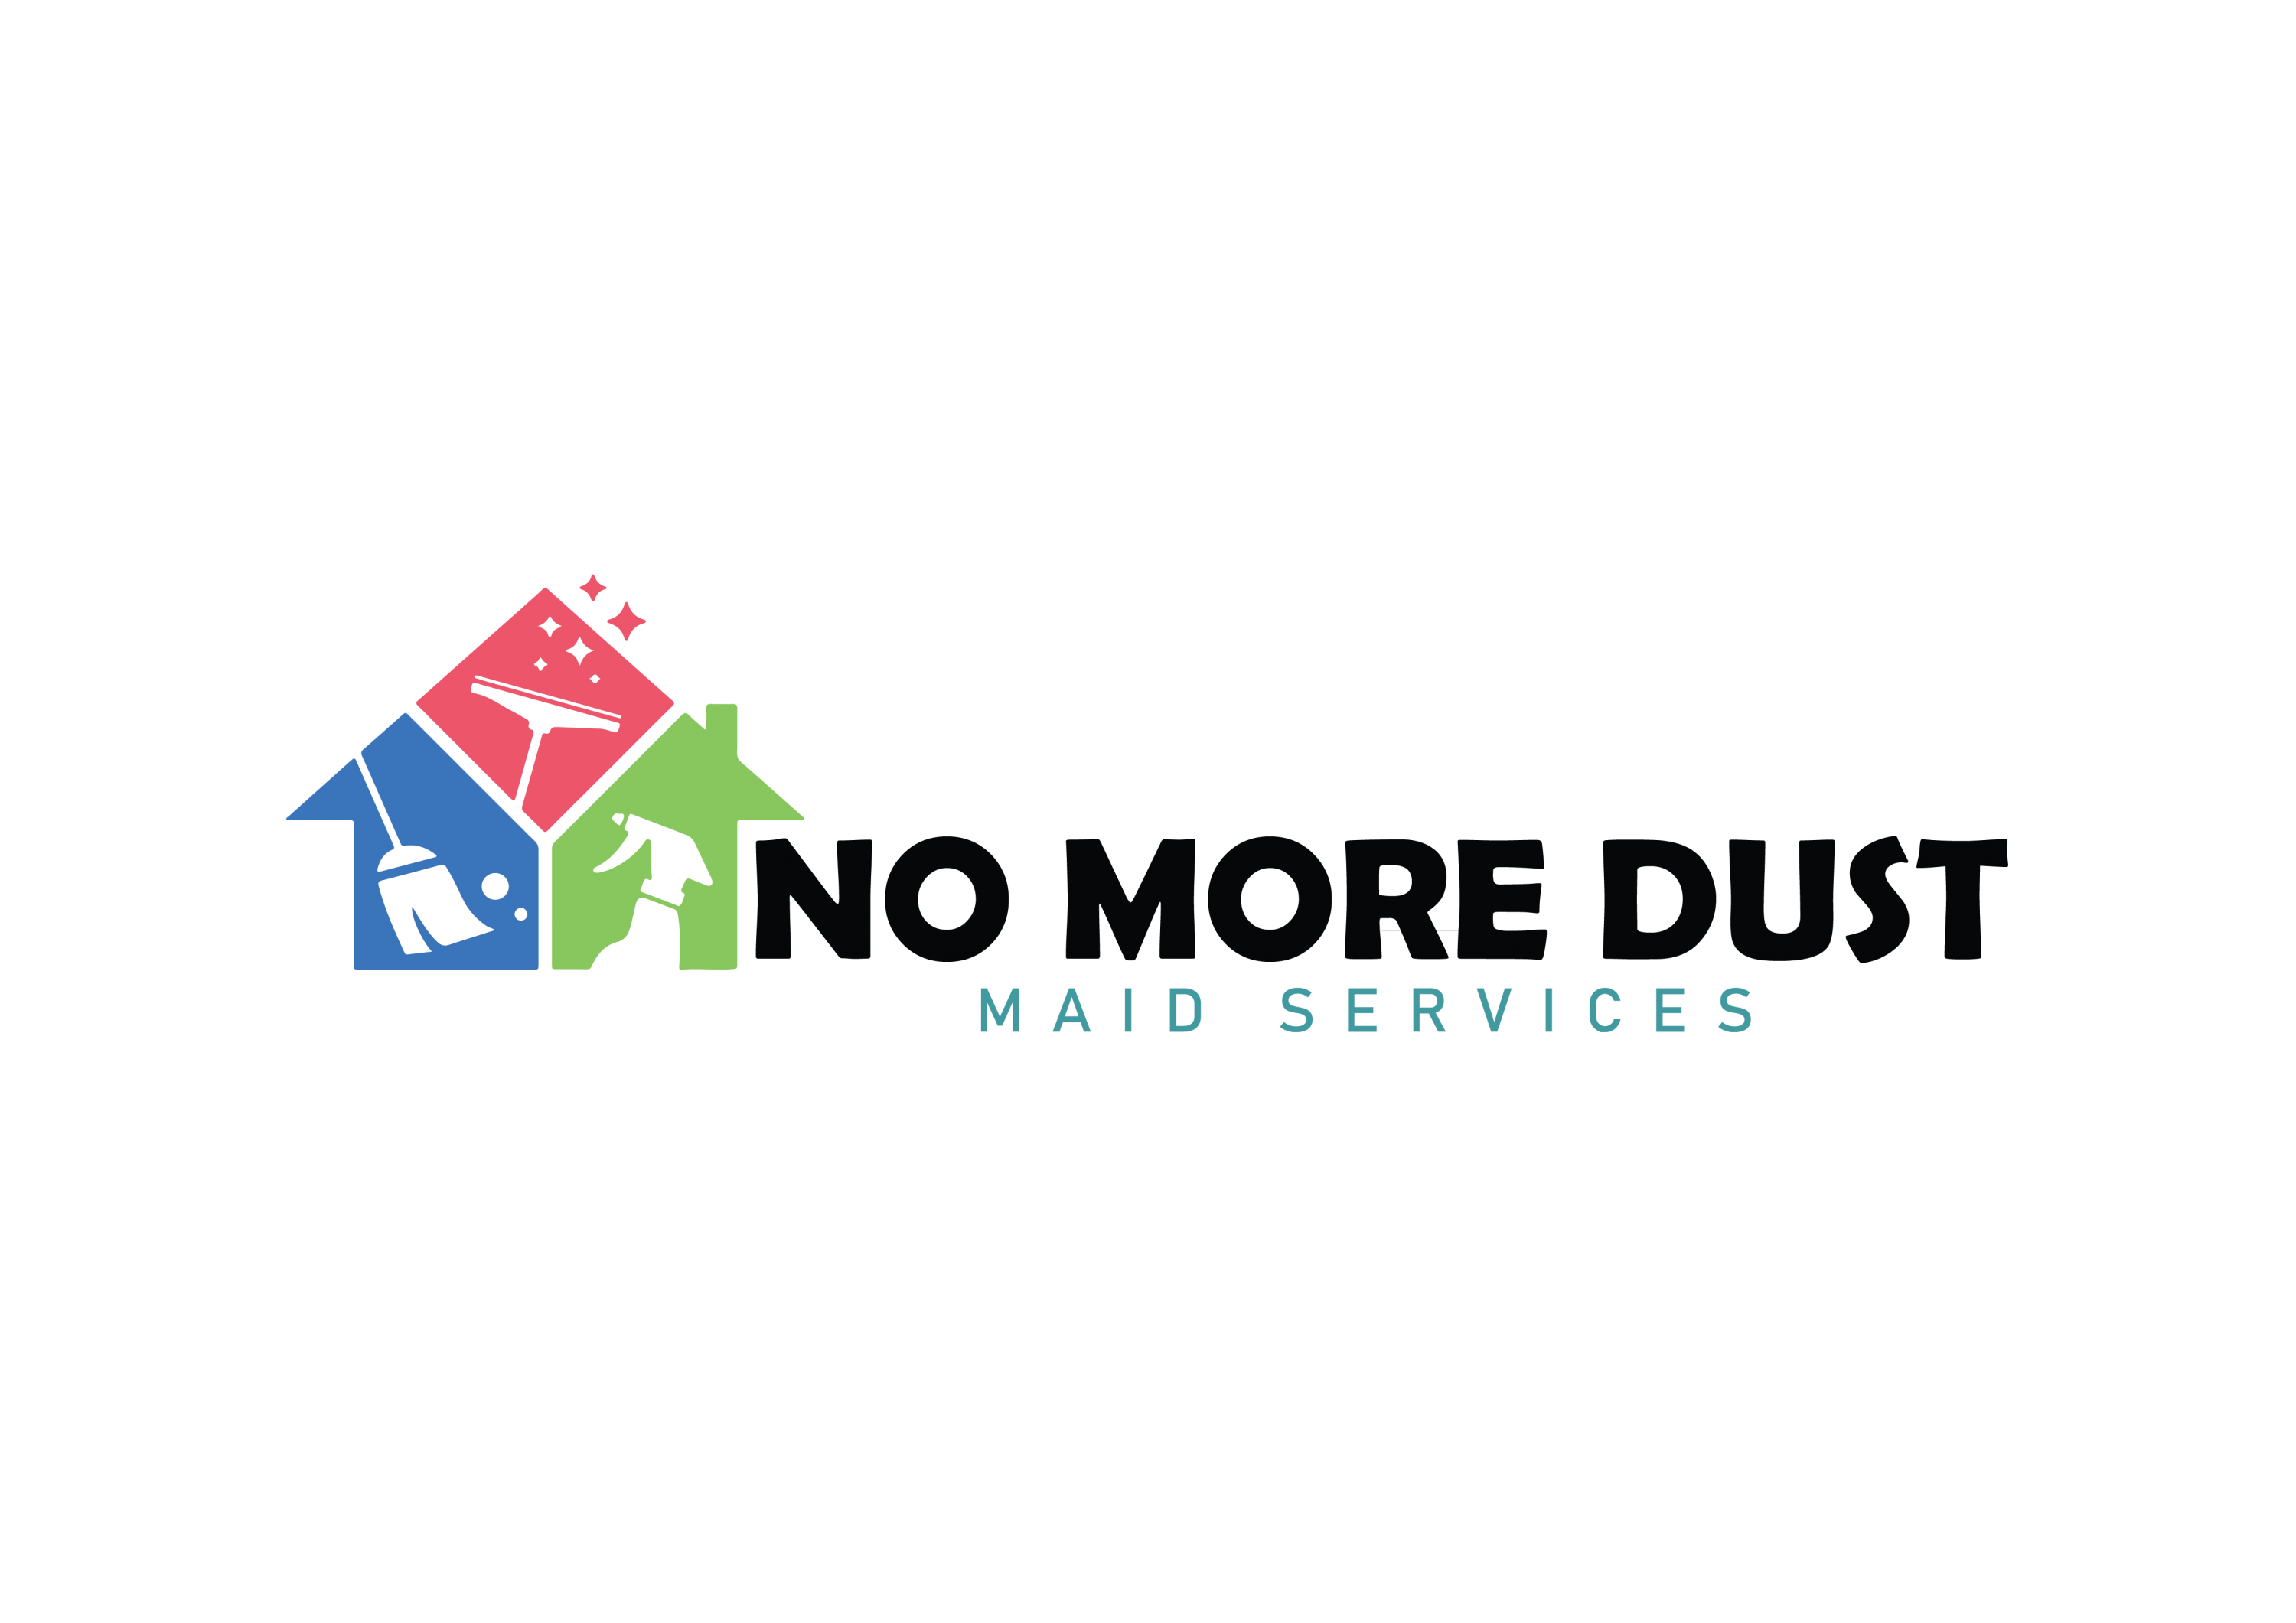 No More Dust Maid Services